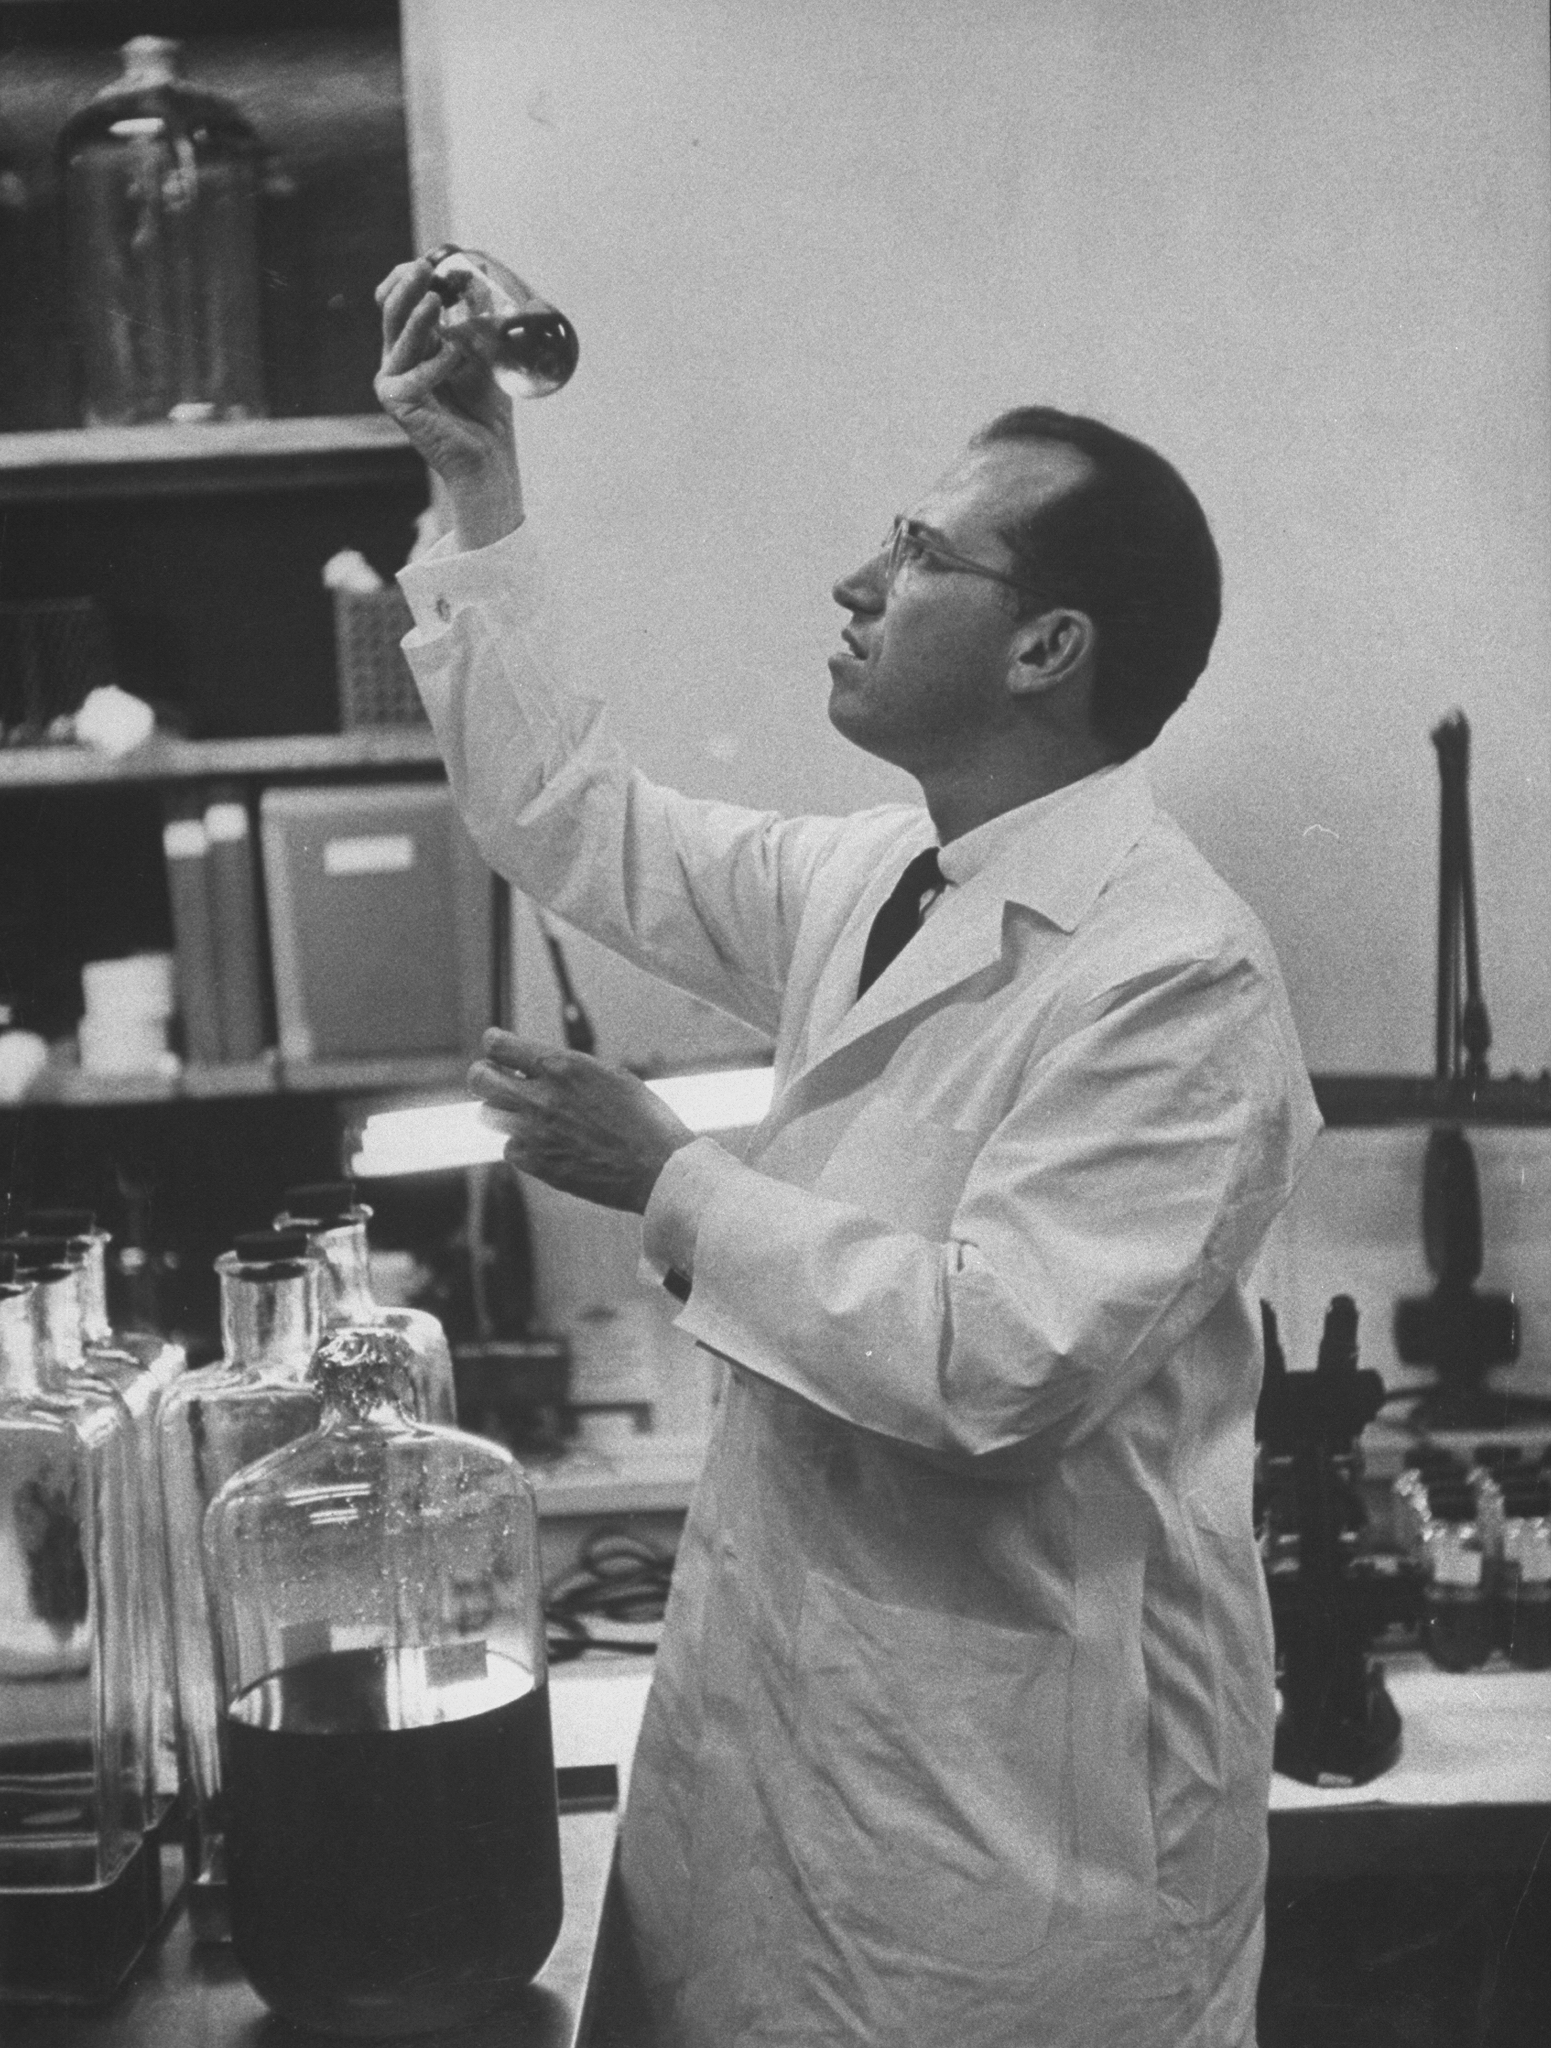 Jonas Salk in 1955, the year his polio vaccine was proven effective